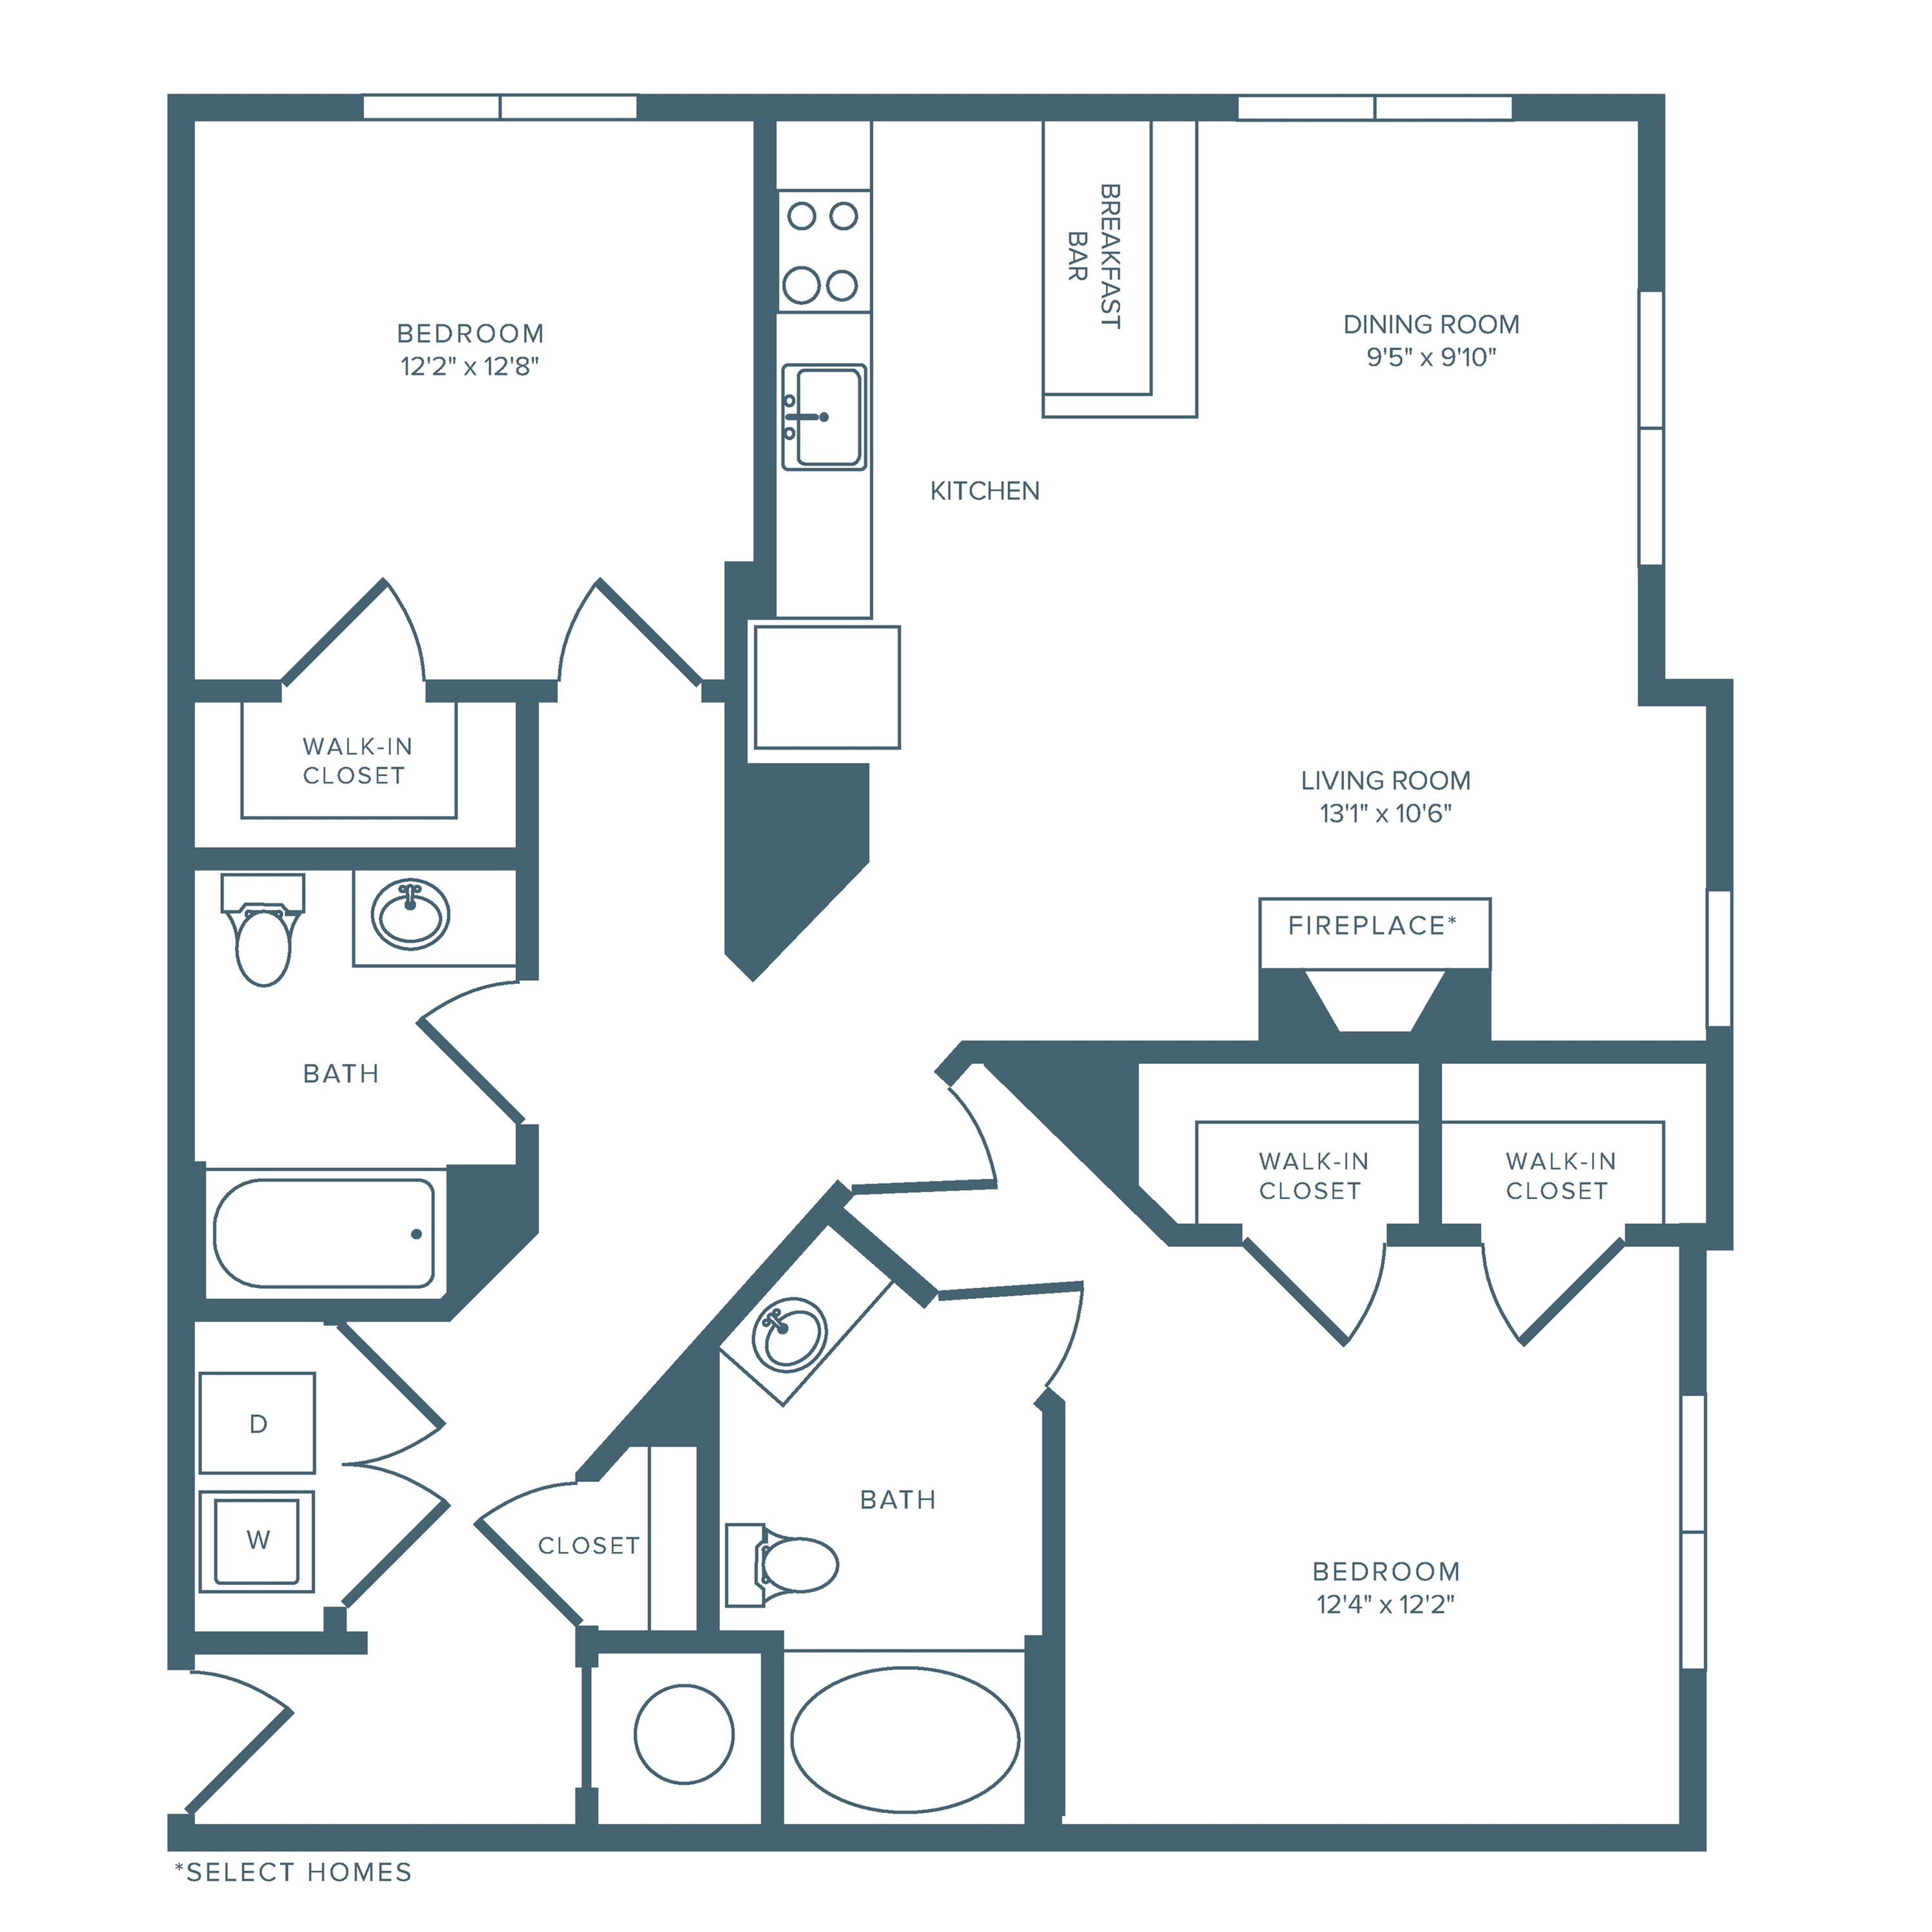 1181 square foot two bedroom two bath apartment floorplan image